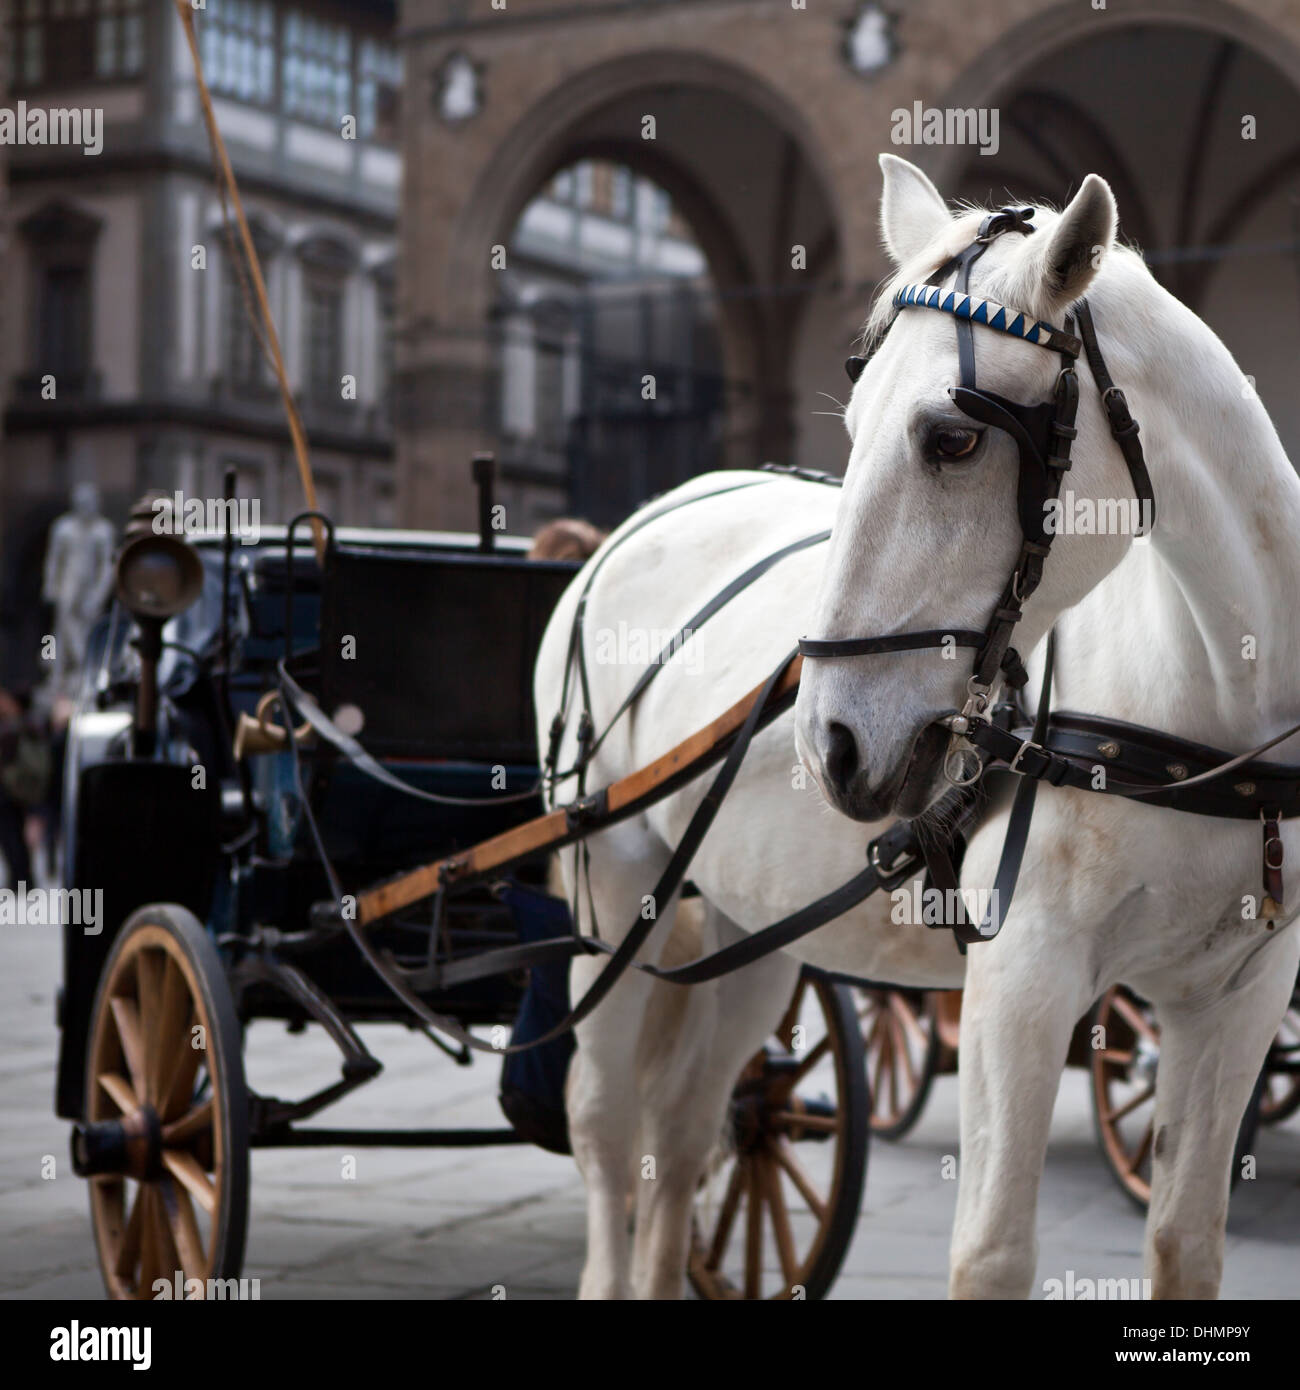 White Horse And Carriage Stock Photo Alamy